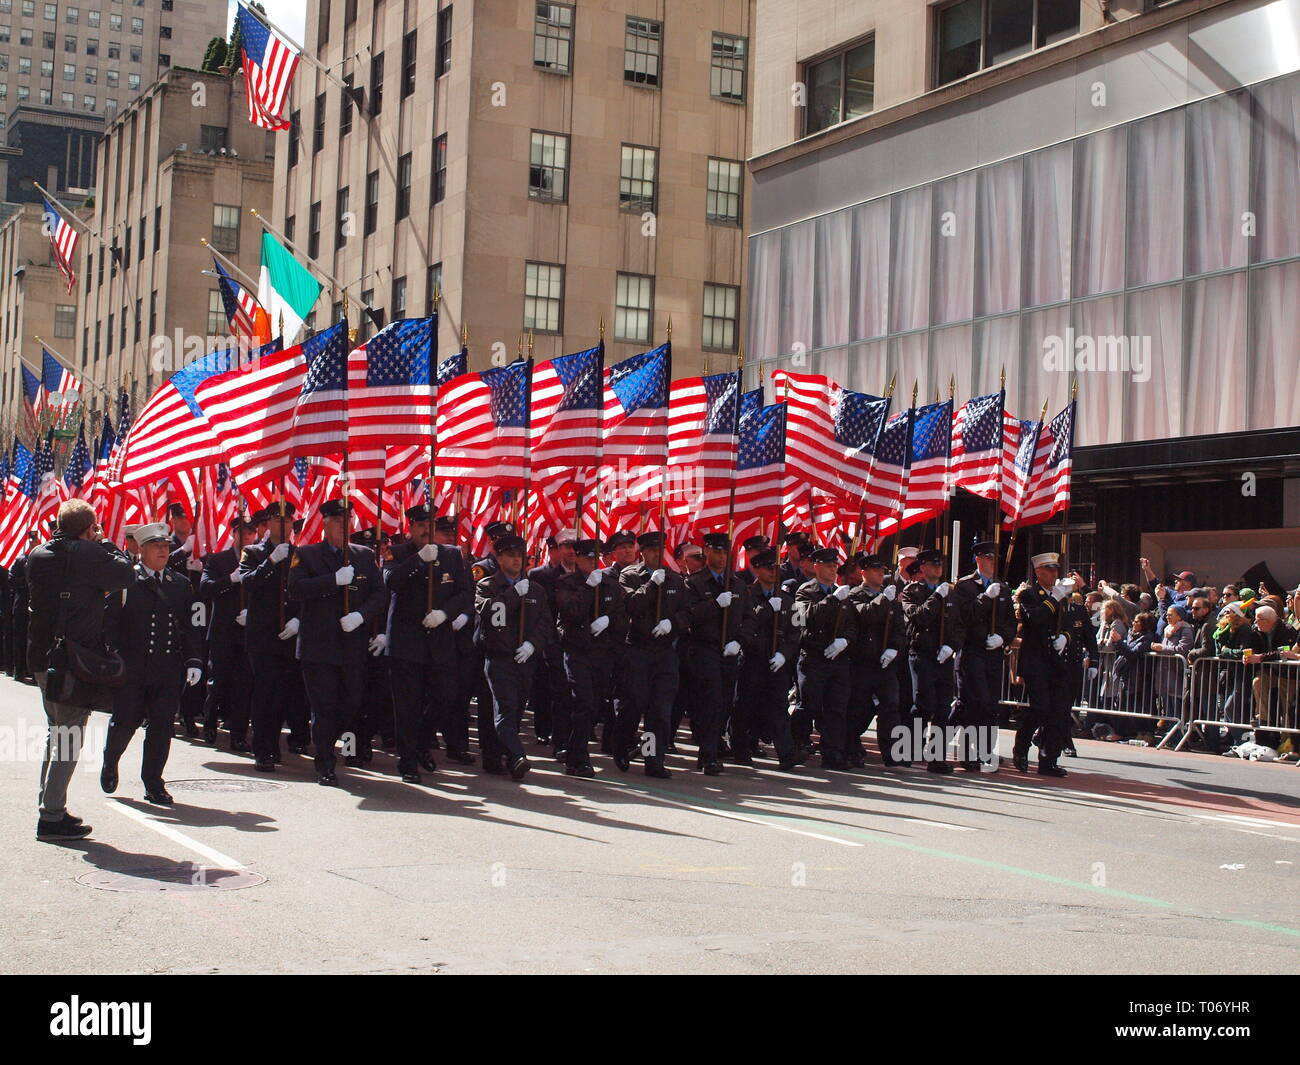 343 NYFD members carrying American flags commemorating members who were killed on 9/11/01 terrorist attacks on New York City. - Stock Image